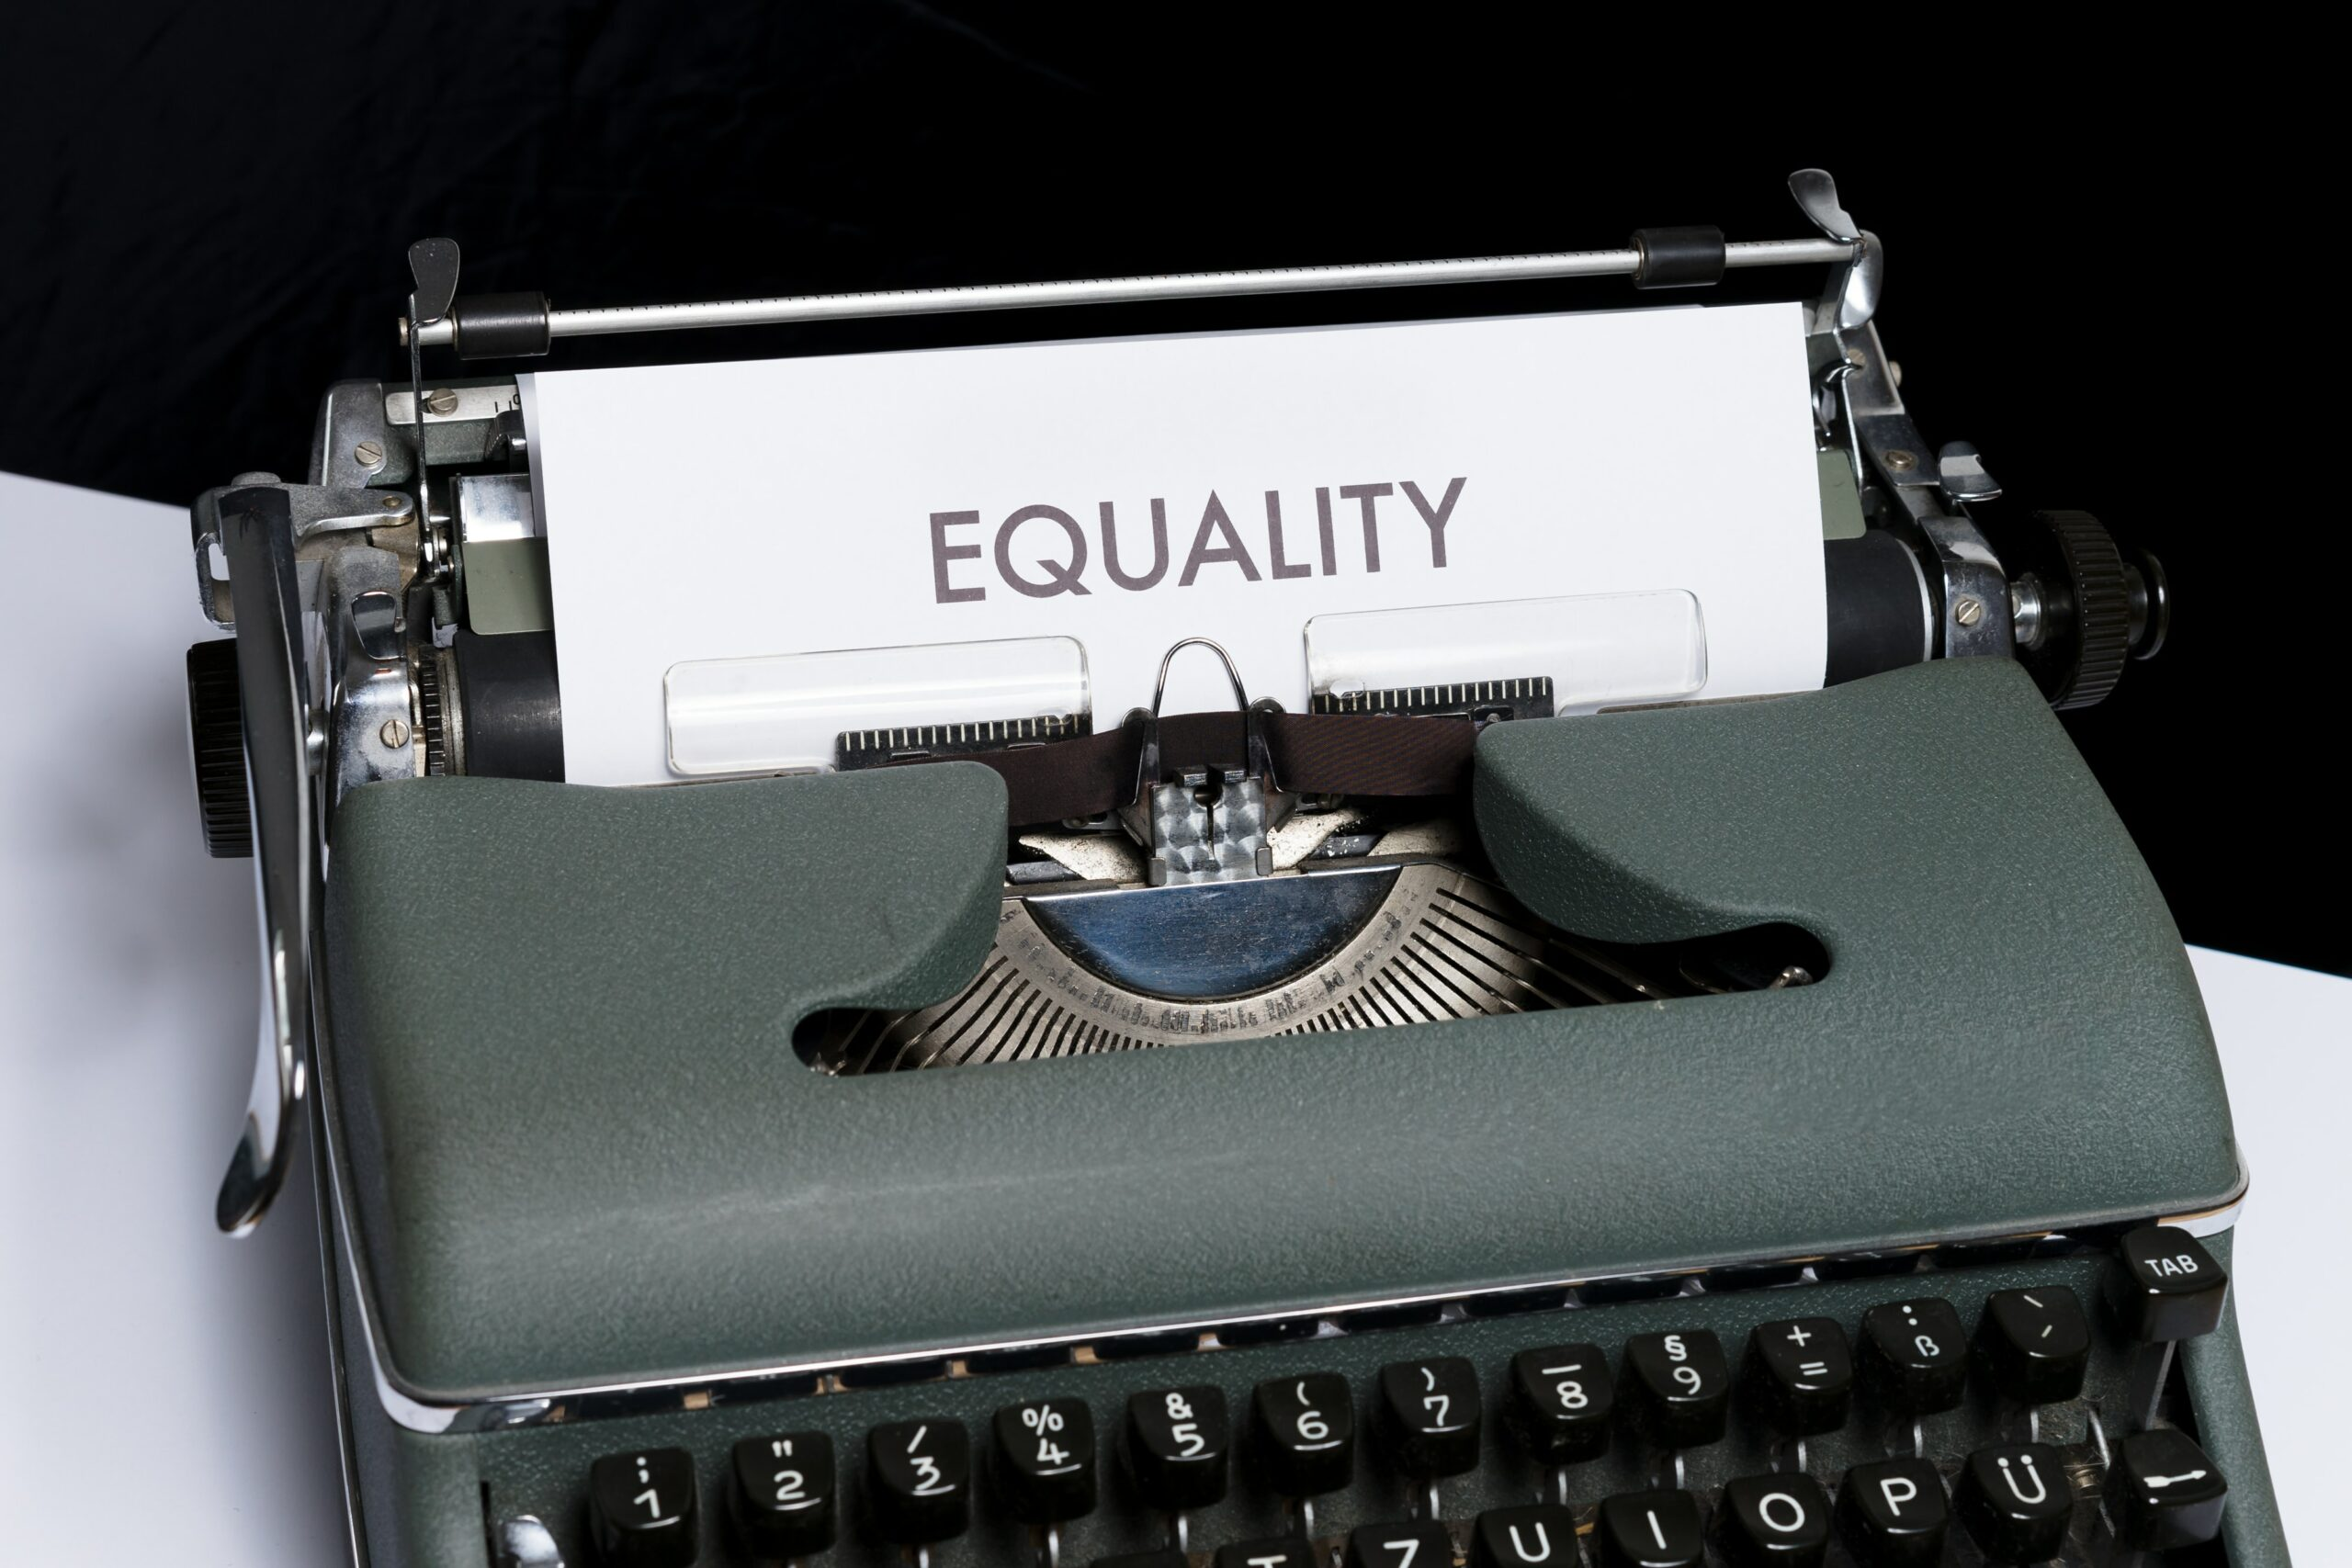 How can You Flirt with Equality in 2021?